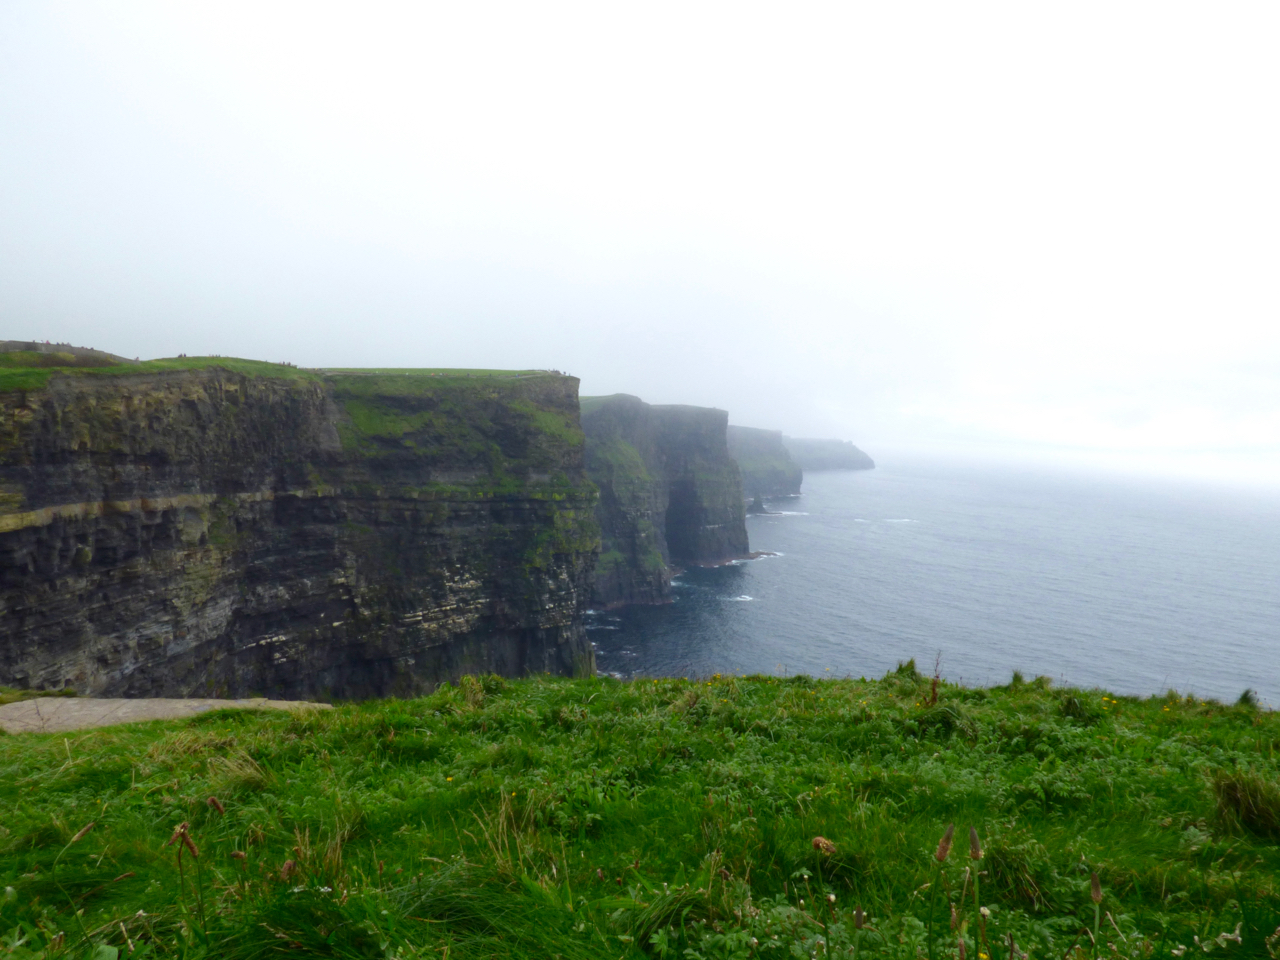 Cliffs of Moher Ireland shrouded in fog and mist